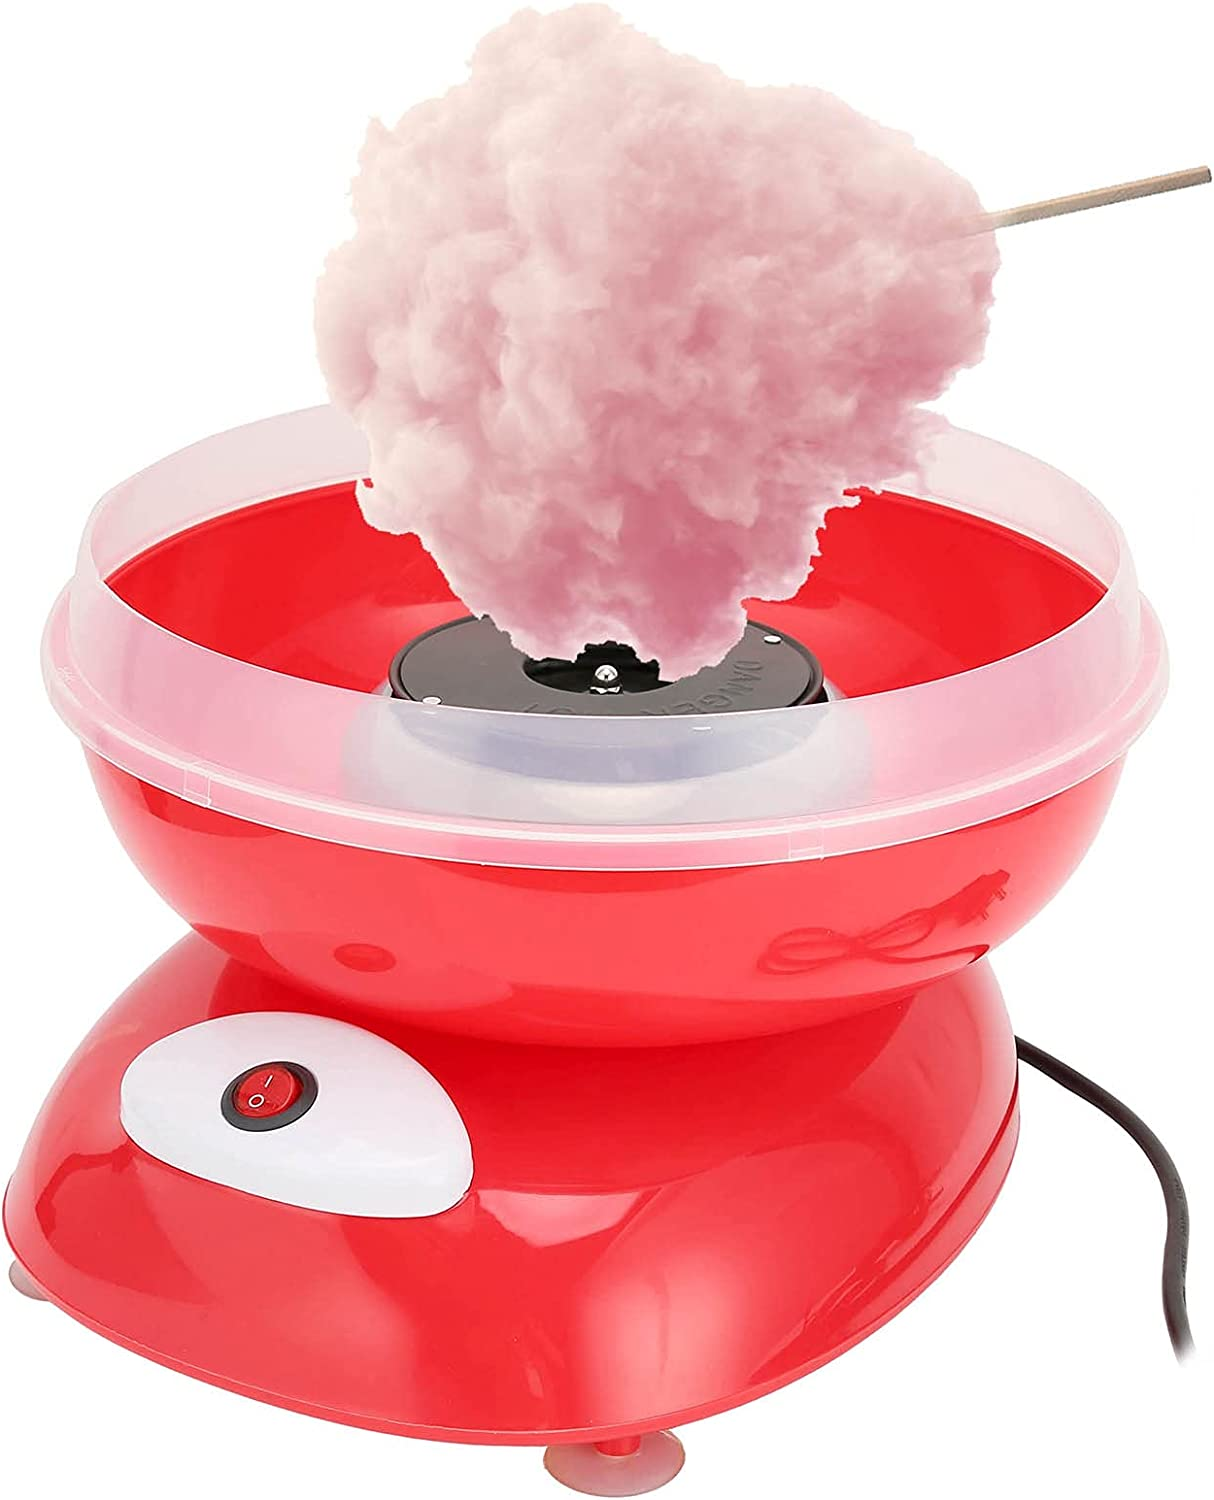 Indianapolis Mall Candy Ranking TOP17 Floss Machine Children Home‑Made Mini DIY